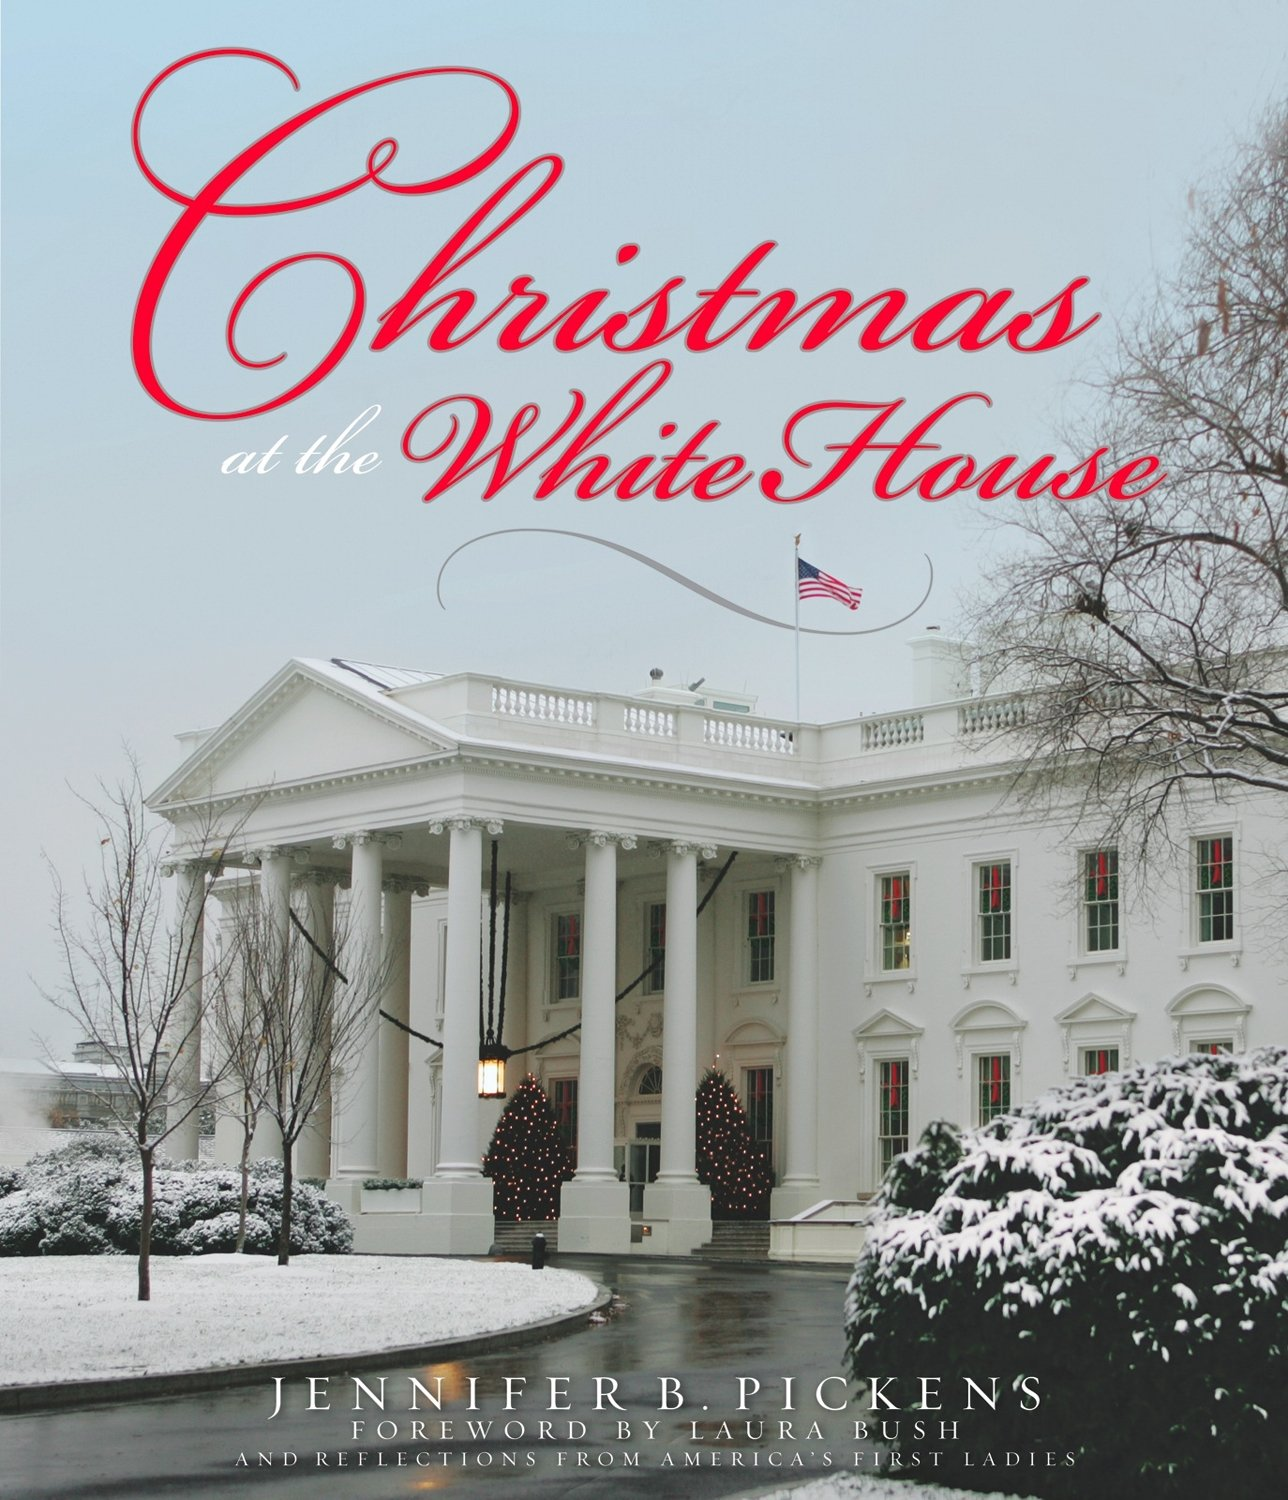 Christmas At The White House  And Reflections From America's First Ladies:  Jennifer Pickens, Laura Bush: 9780615287645: Amazon: Books